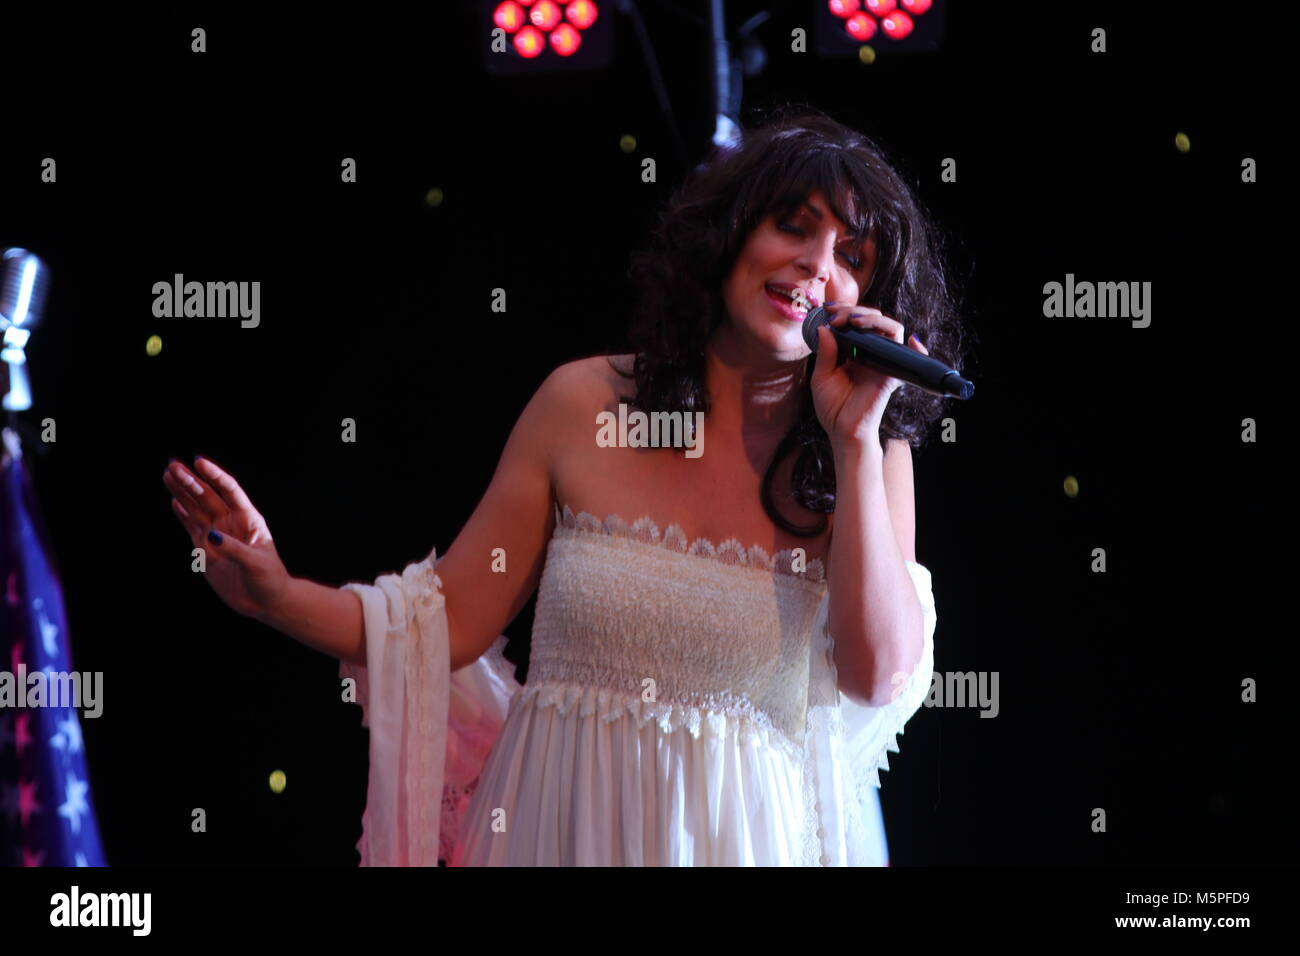 Karen Carpenter Stock Photos & Karen Carpenter Stock Images - Alamy